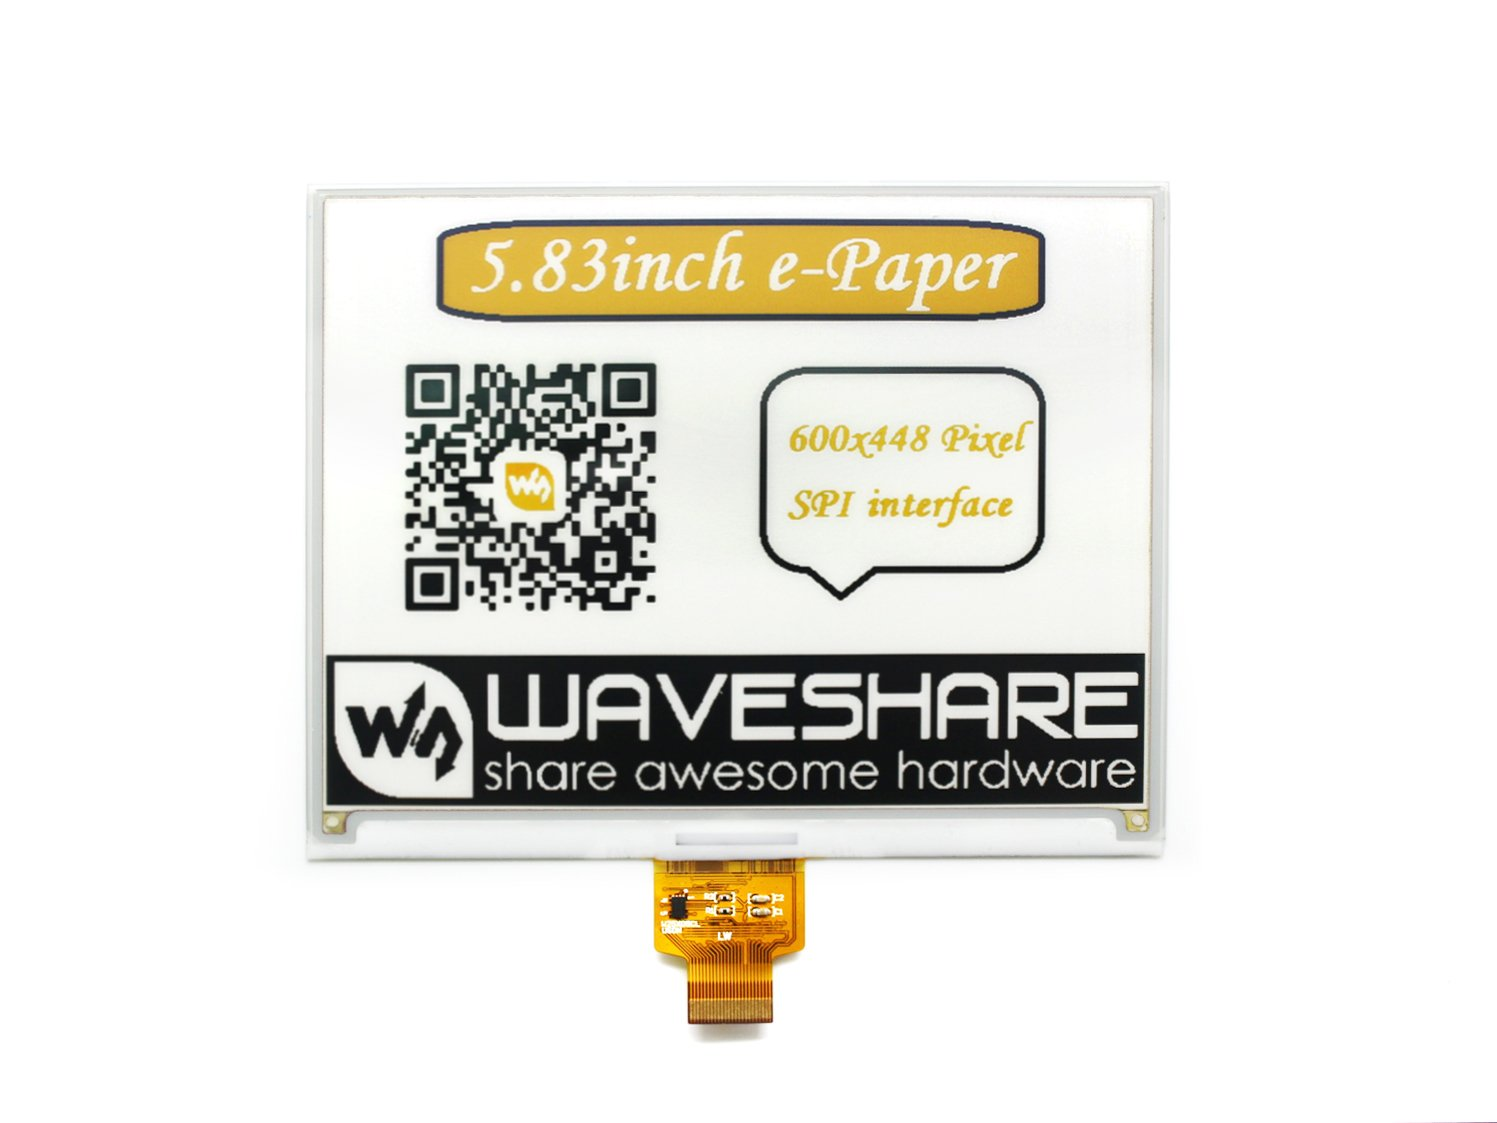 Without PCB 296x128 Resolution 3.3v E-Paper Screen Support Yellow Black and White Three-Color Display with Embedded Controller,SPI Interface C Waveshare 2.9 inch E-Ink Raw Display Panel